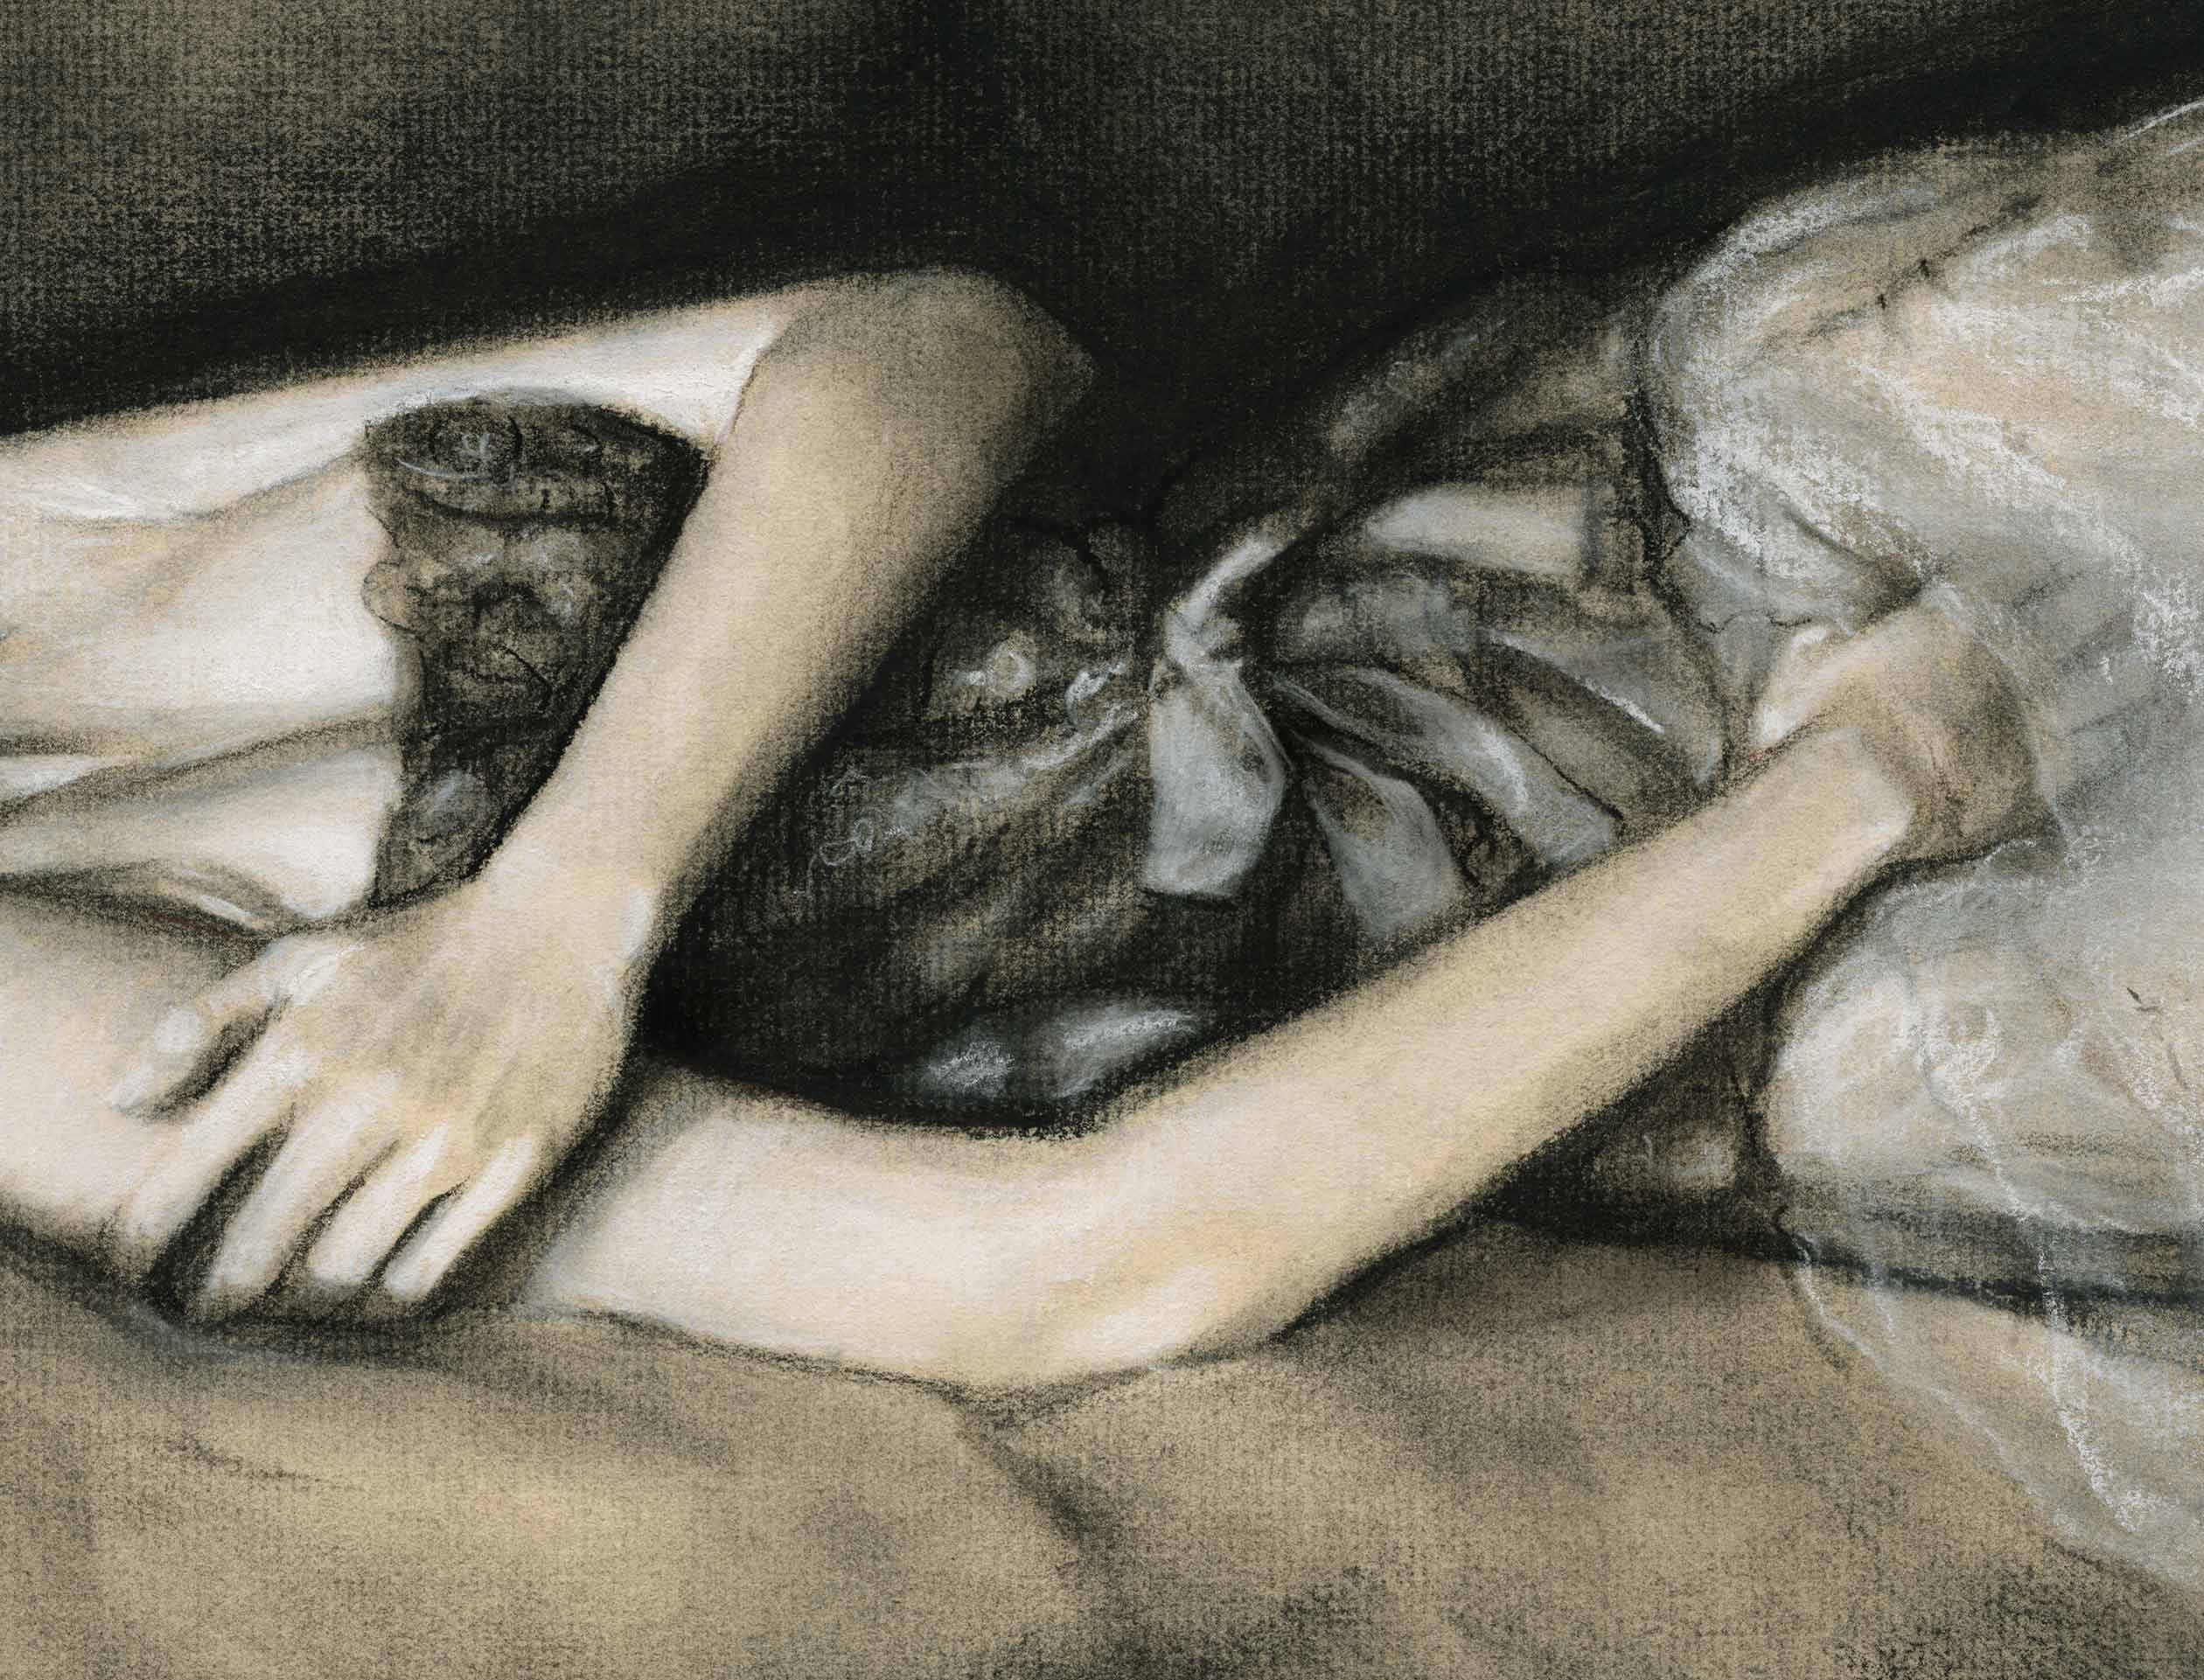 A close up of beautiful girl's body Laying on a couch Art by Fashion Ilustrator Danny Roberts